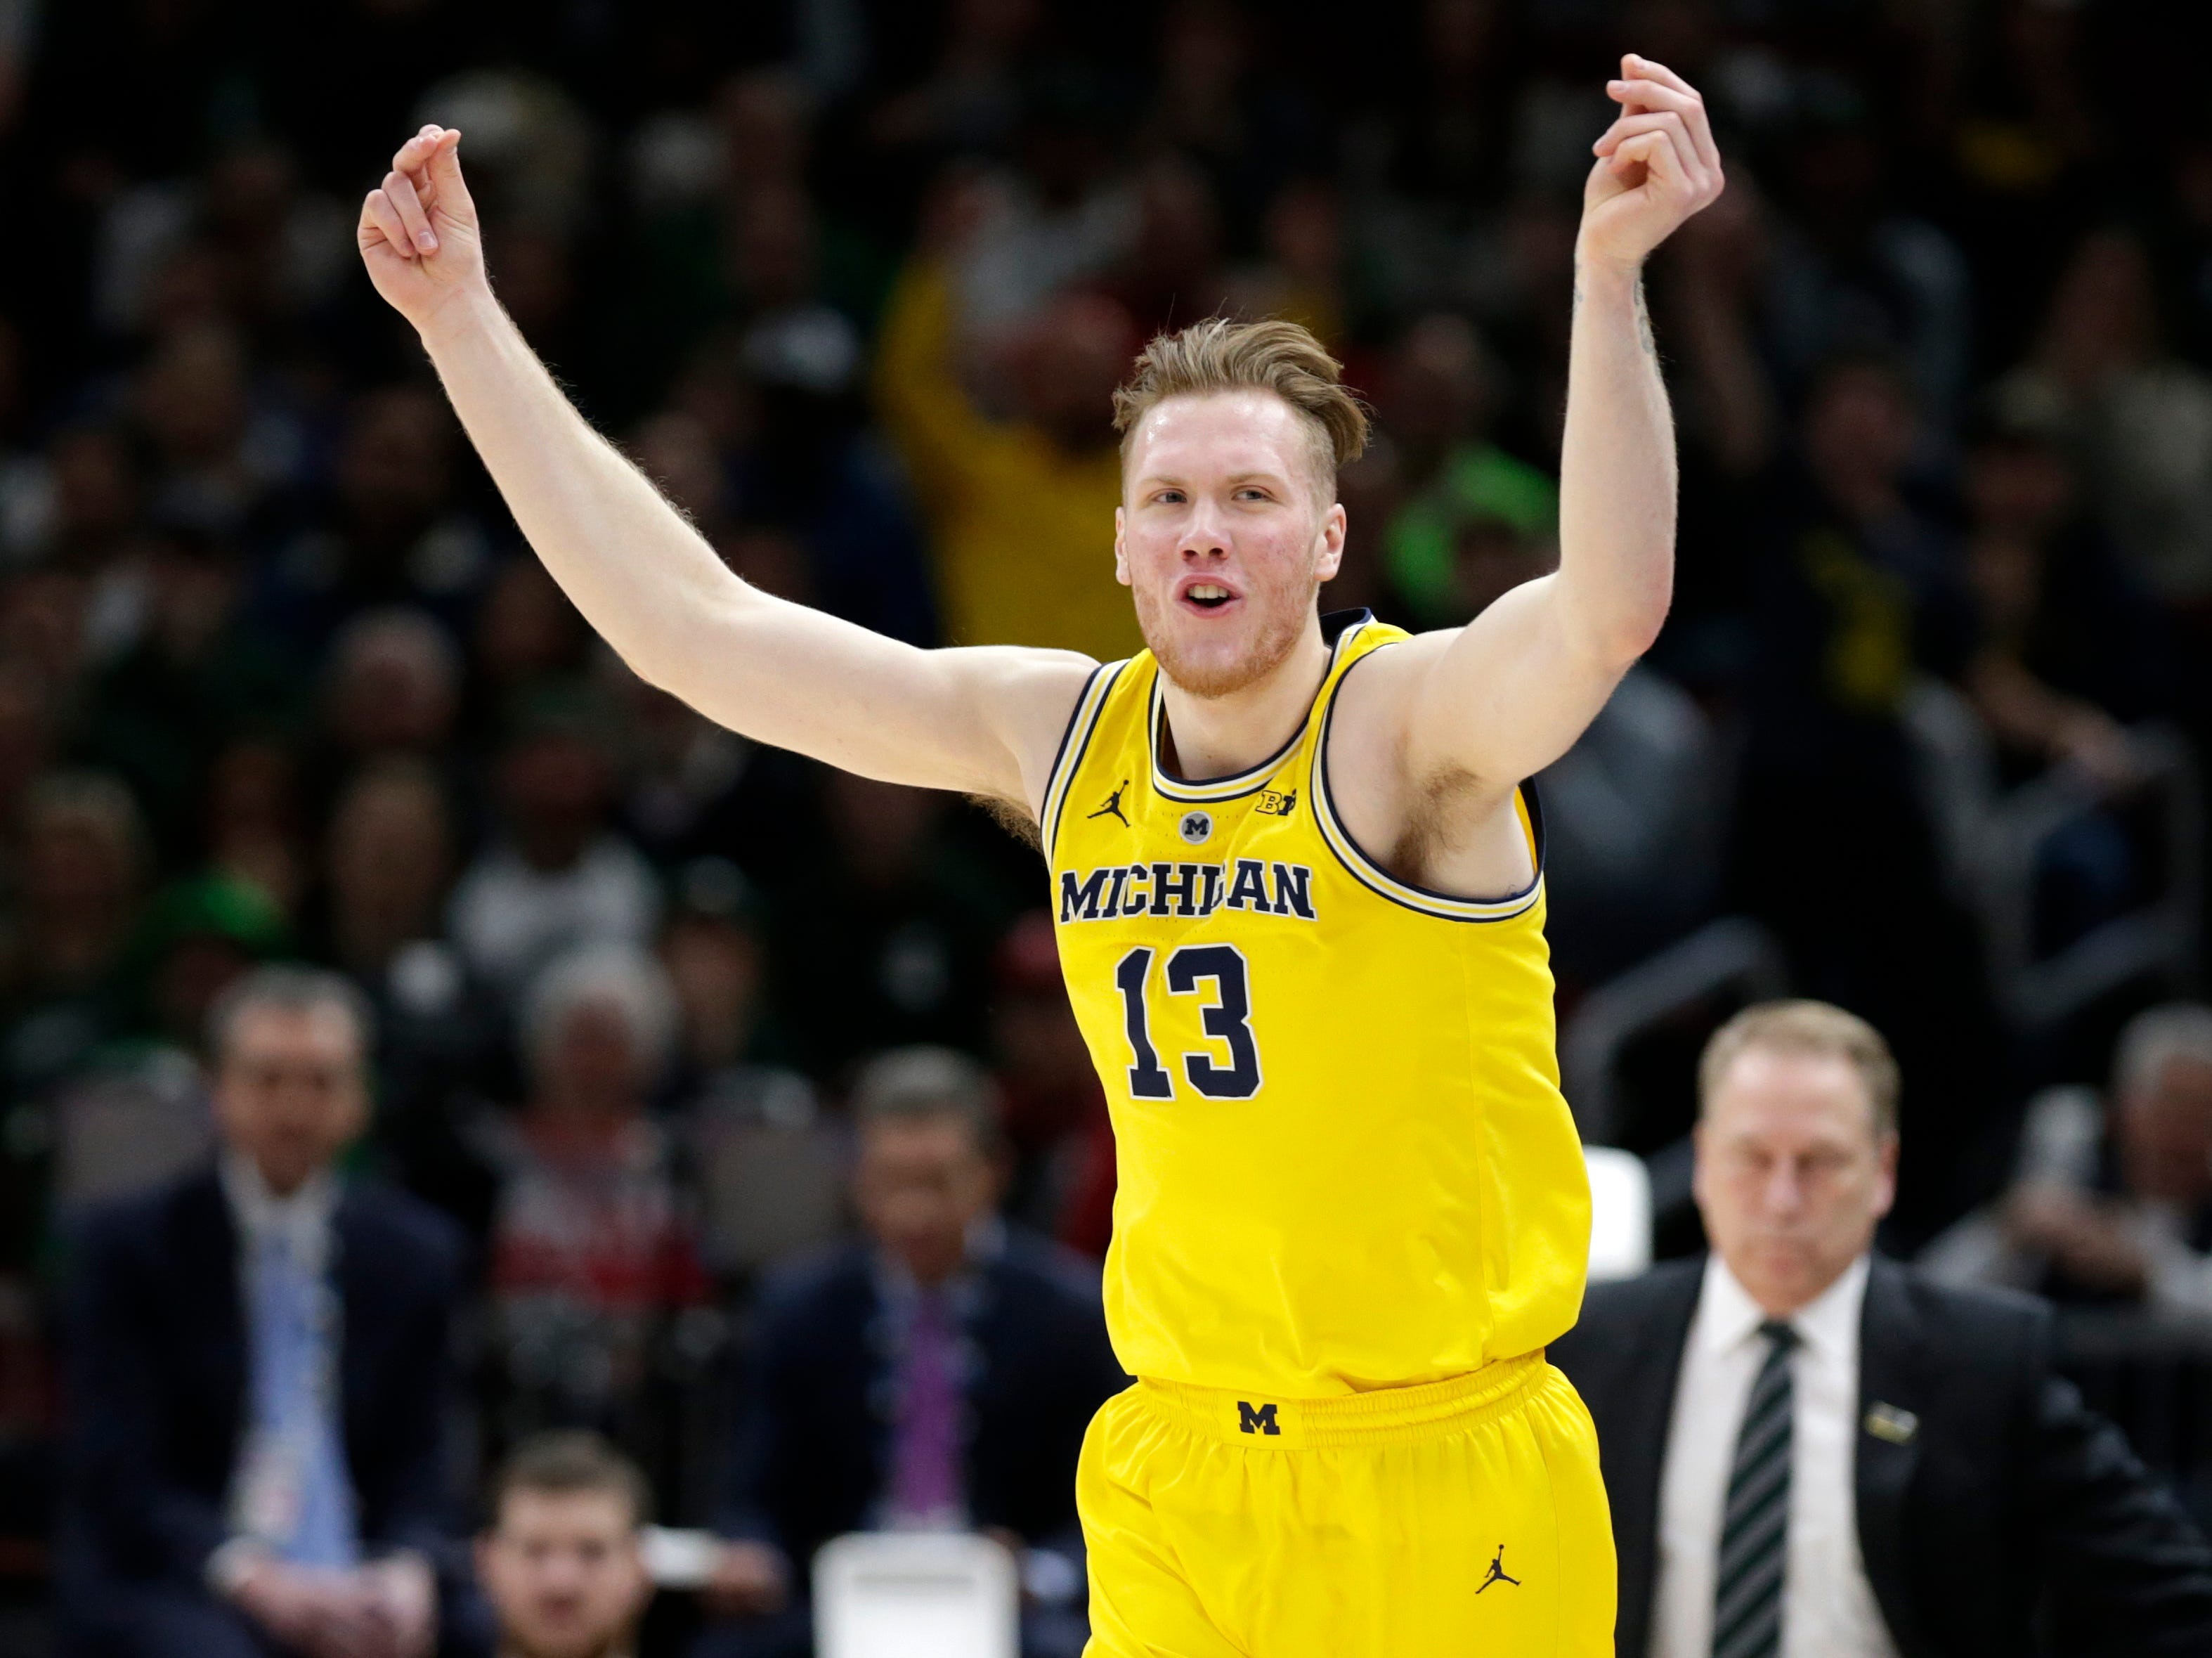 Michigan's Ignas Brazdeikis (13) reacts after shooting a 3-point basket during the first half of an NCAA college basketball championship game against Michigan State in the Big Ten Conference tournament, Sunday, March 17, 2019, in Chicago.